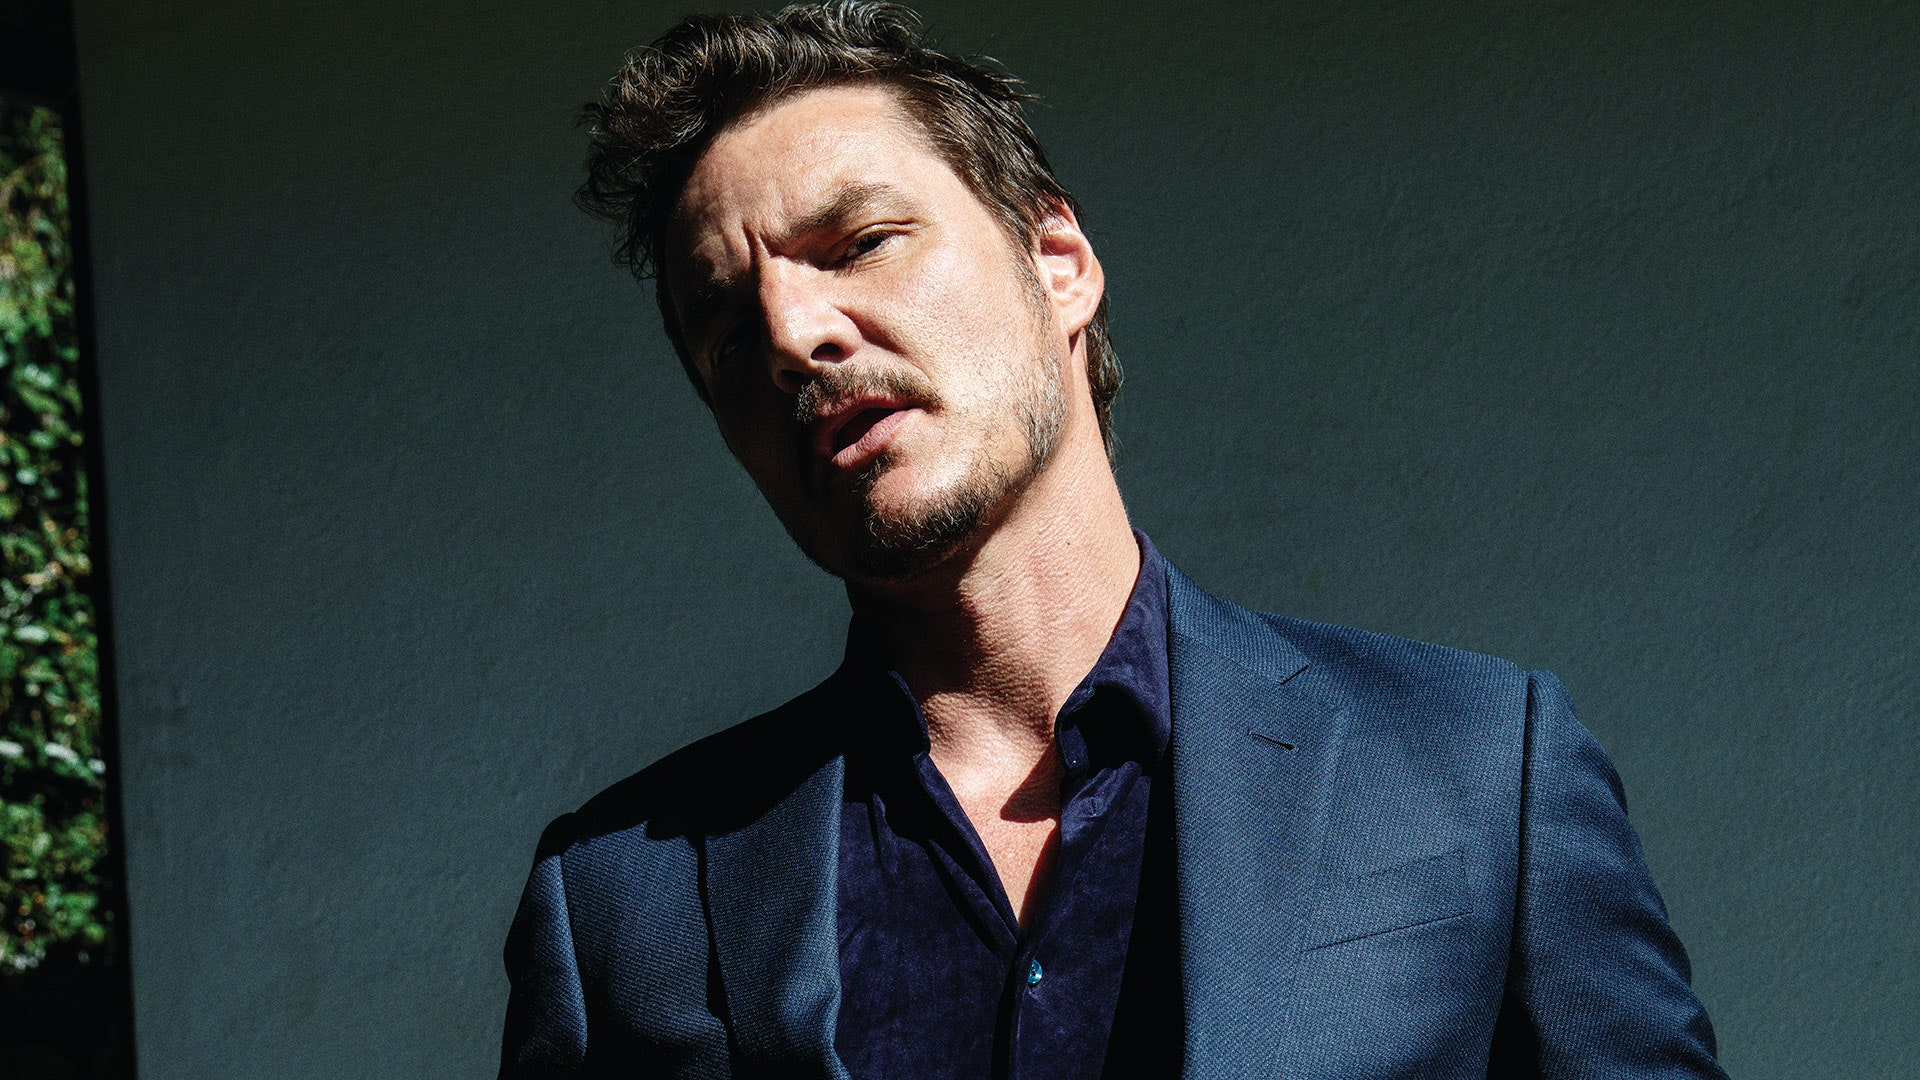 Out of work actor Pedro Pascal set to play Joel in HBO's Last of Us adaptation